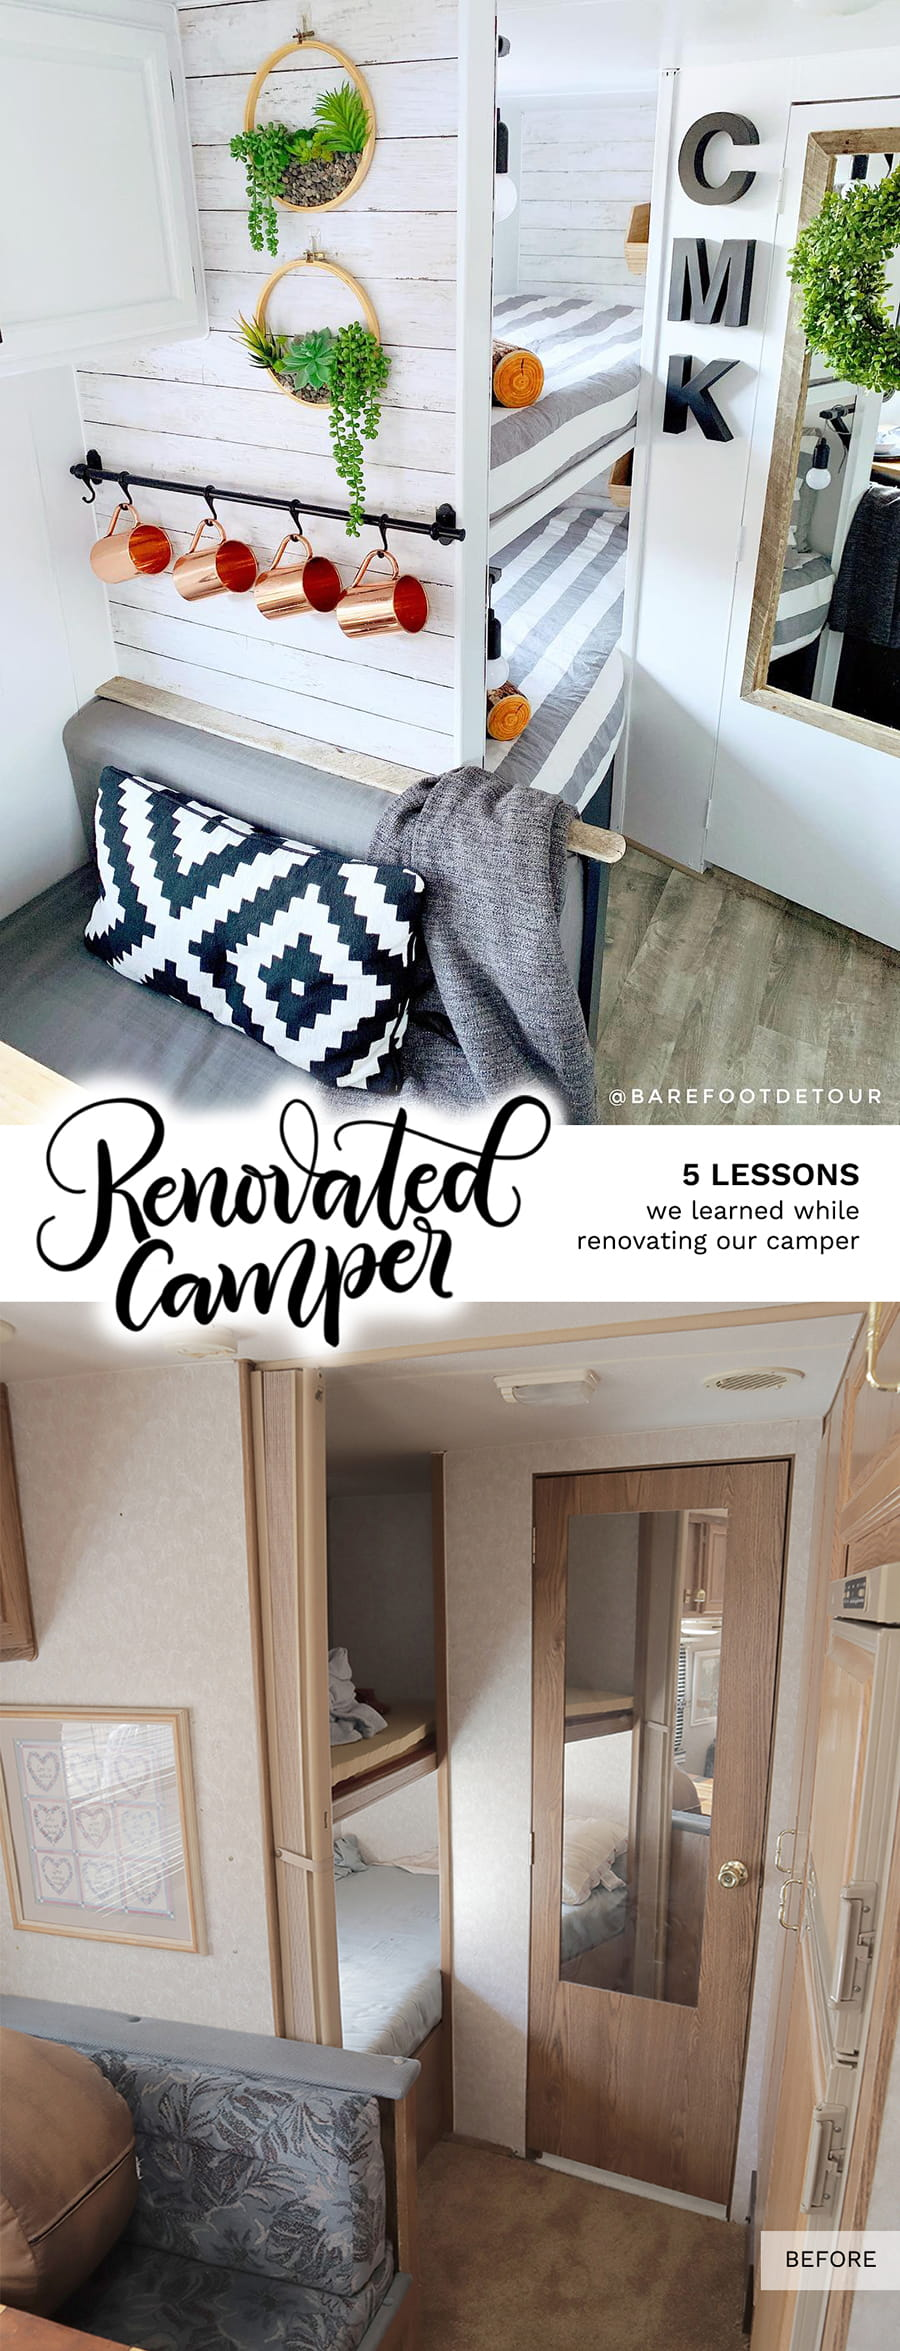 5 Lessons We Learned While Renovating Our Camper Rv Reno Barefoot Detour